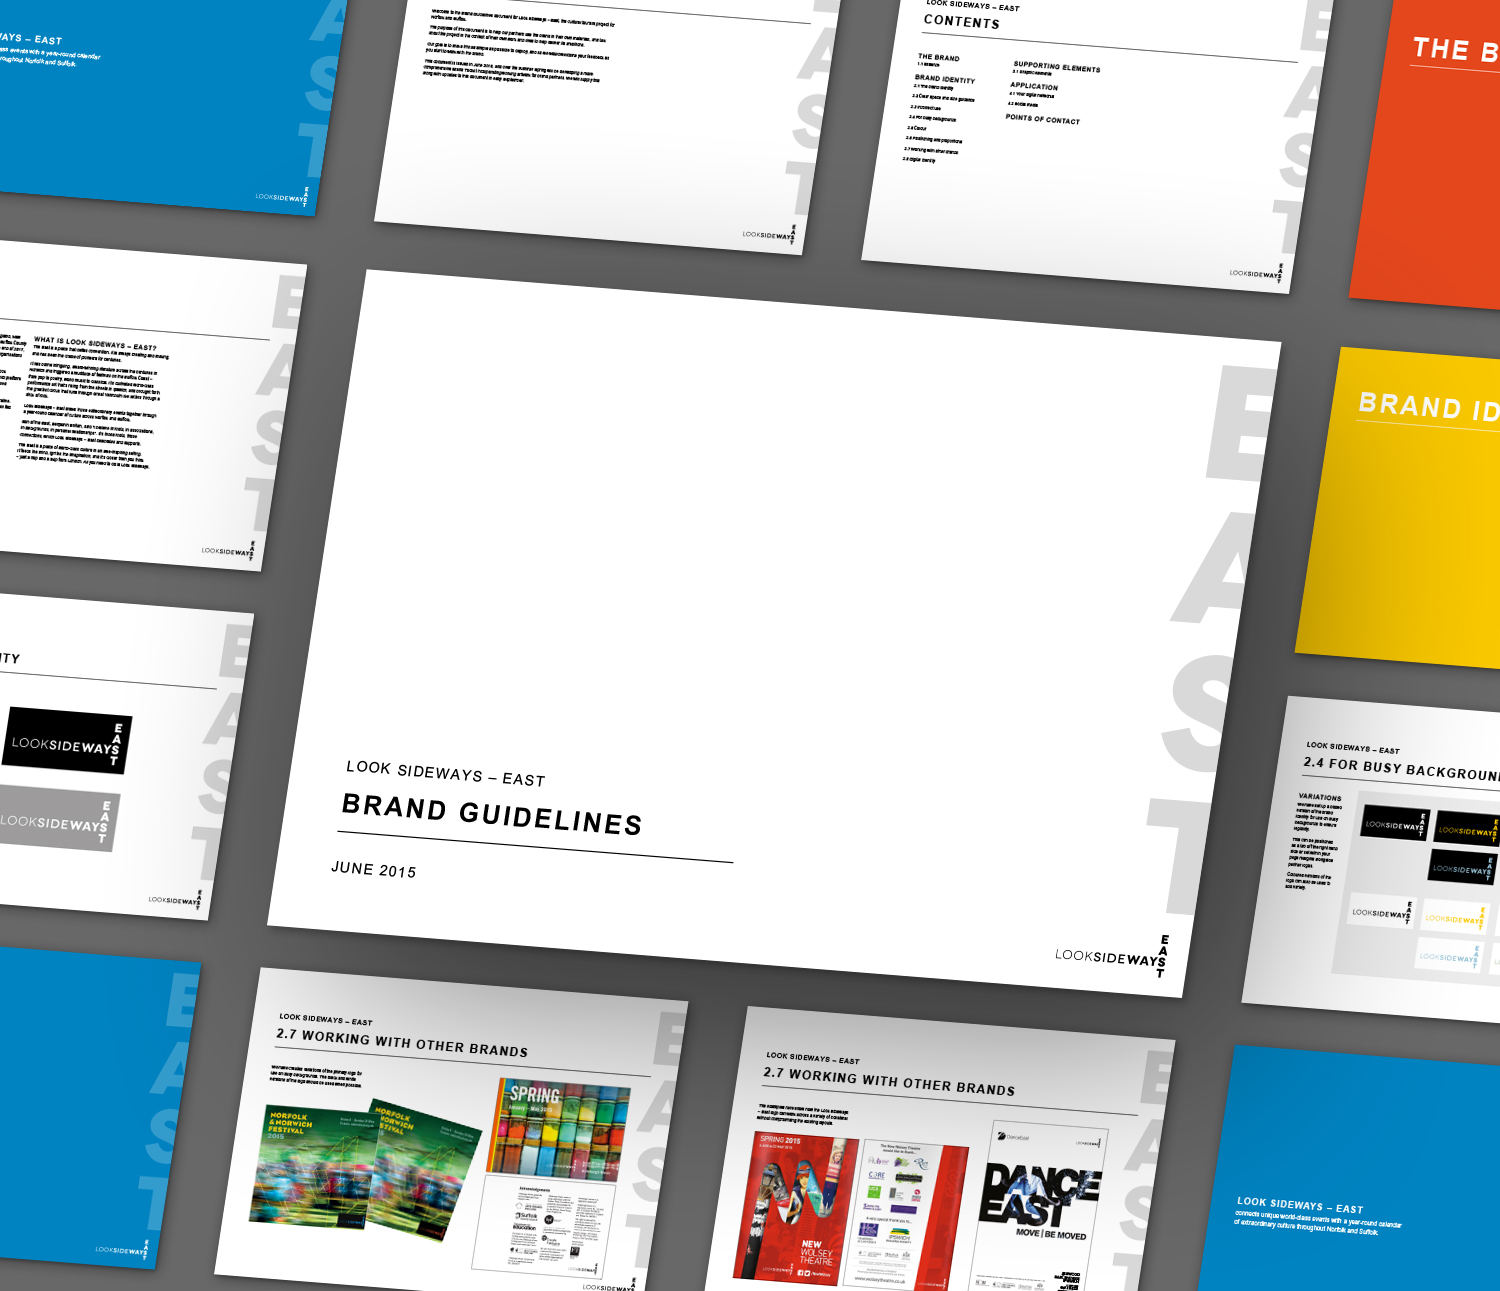 LookSideways - East brand guidelines